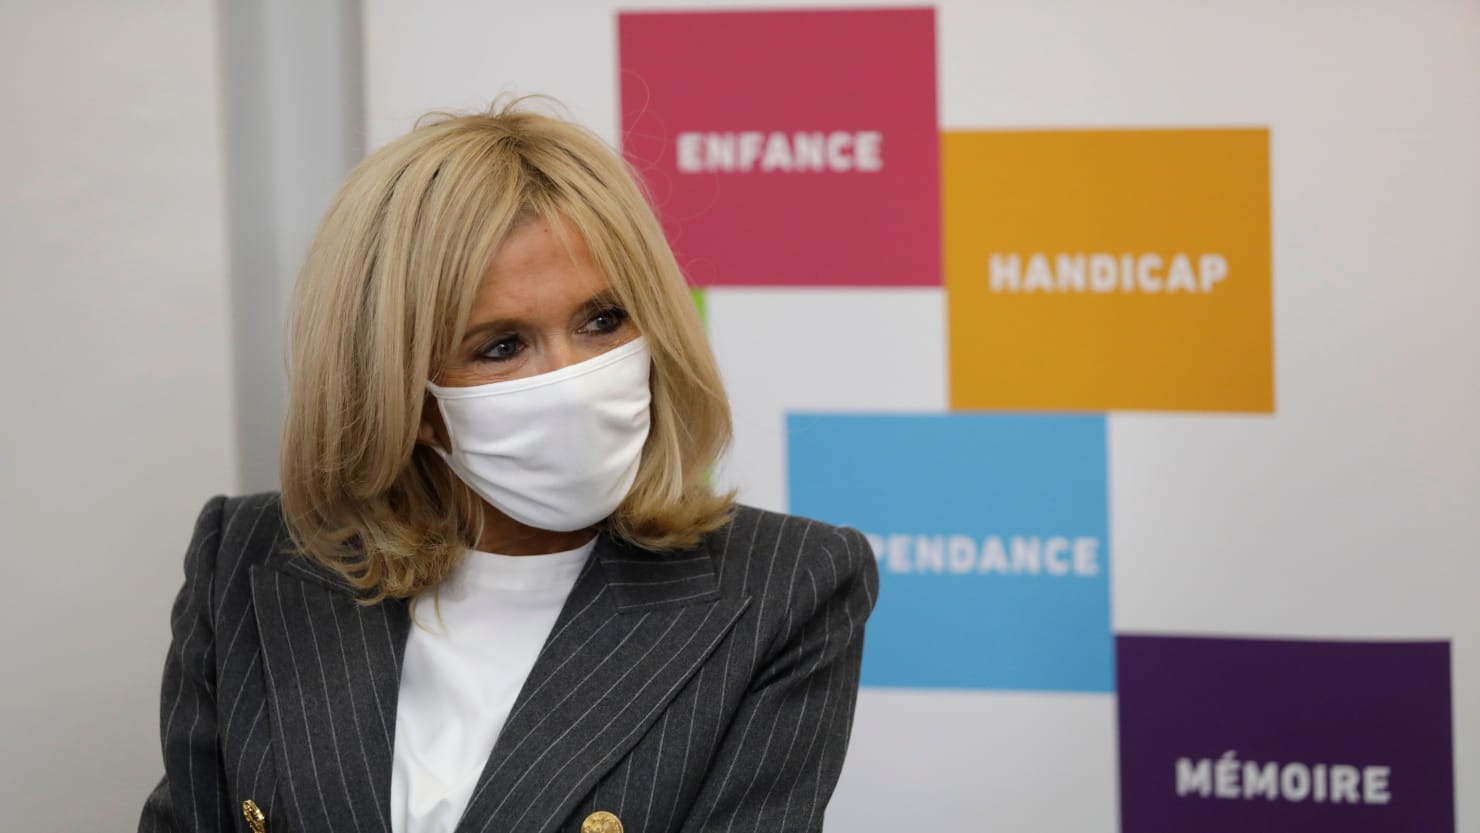 First Lady of France Brigitte Macron Isolating After Contact With COVID-19 Patient